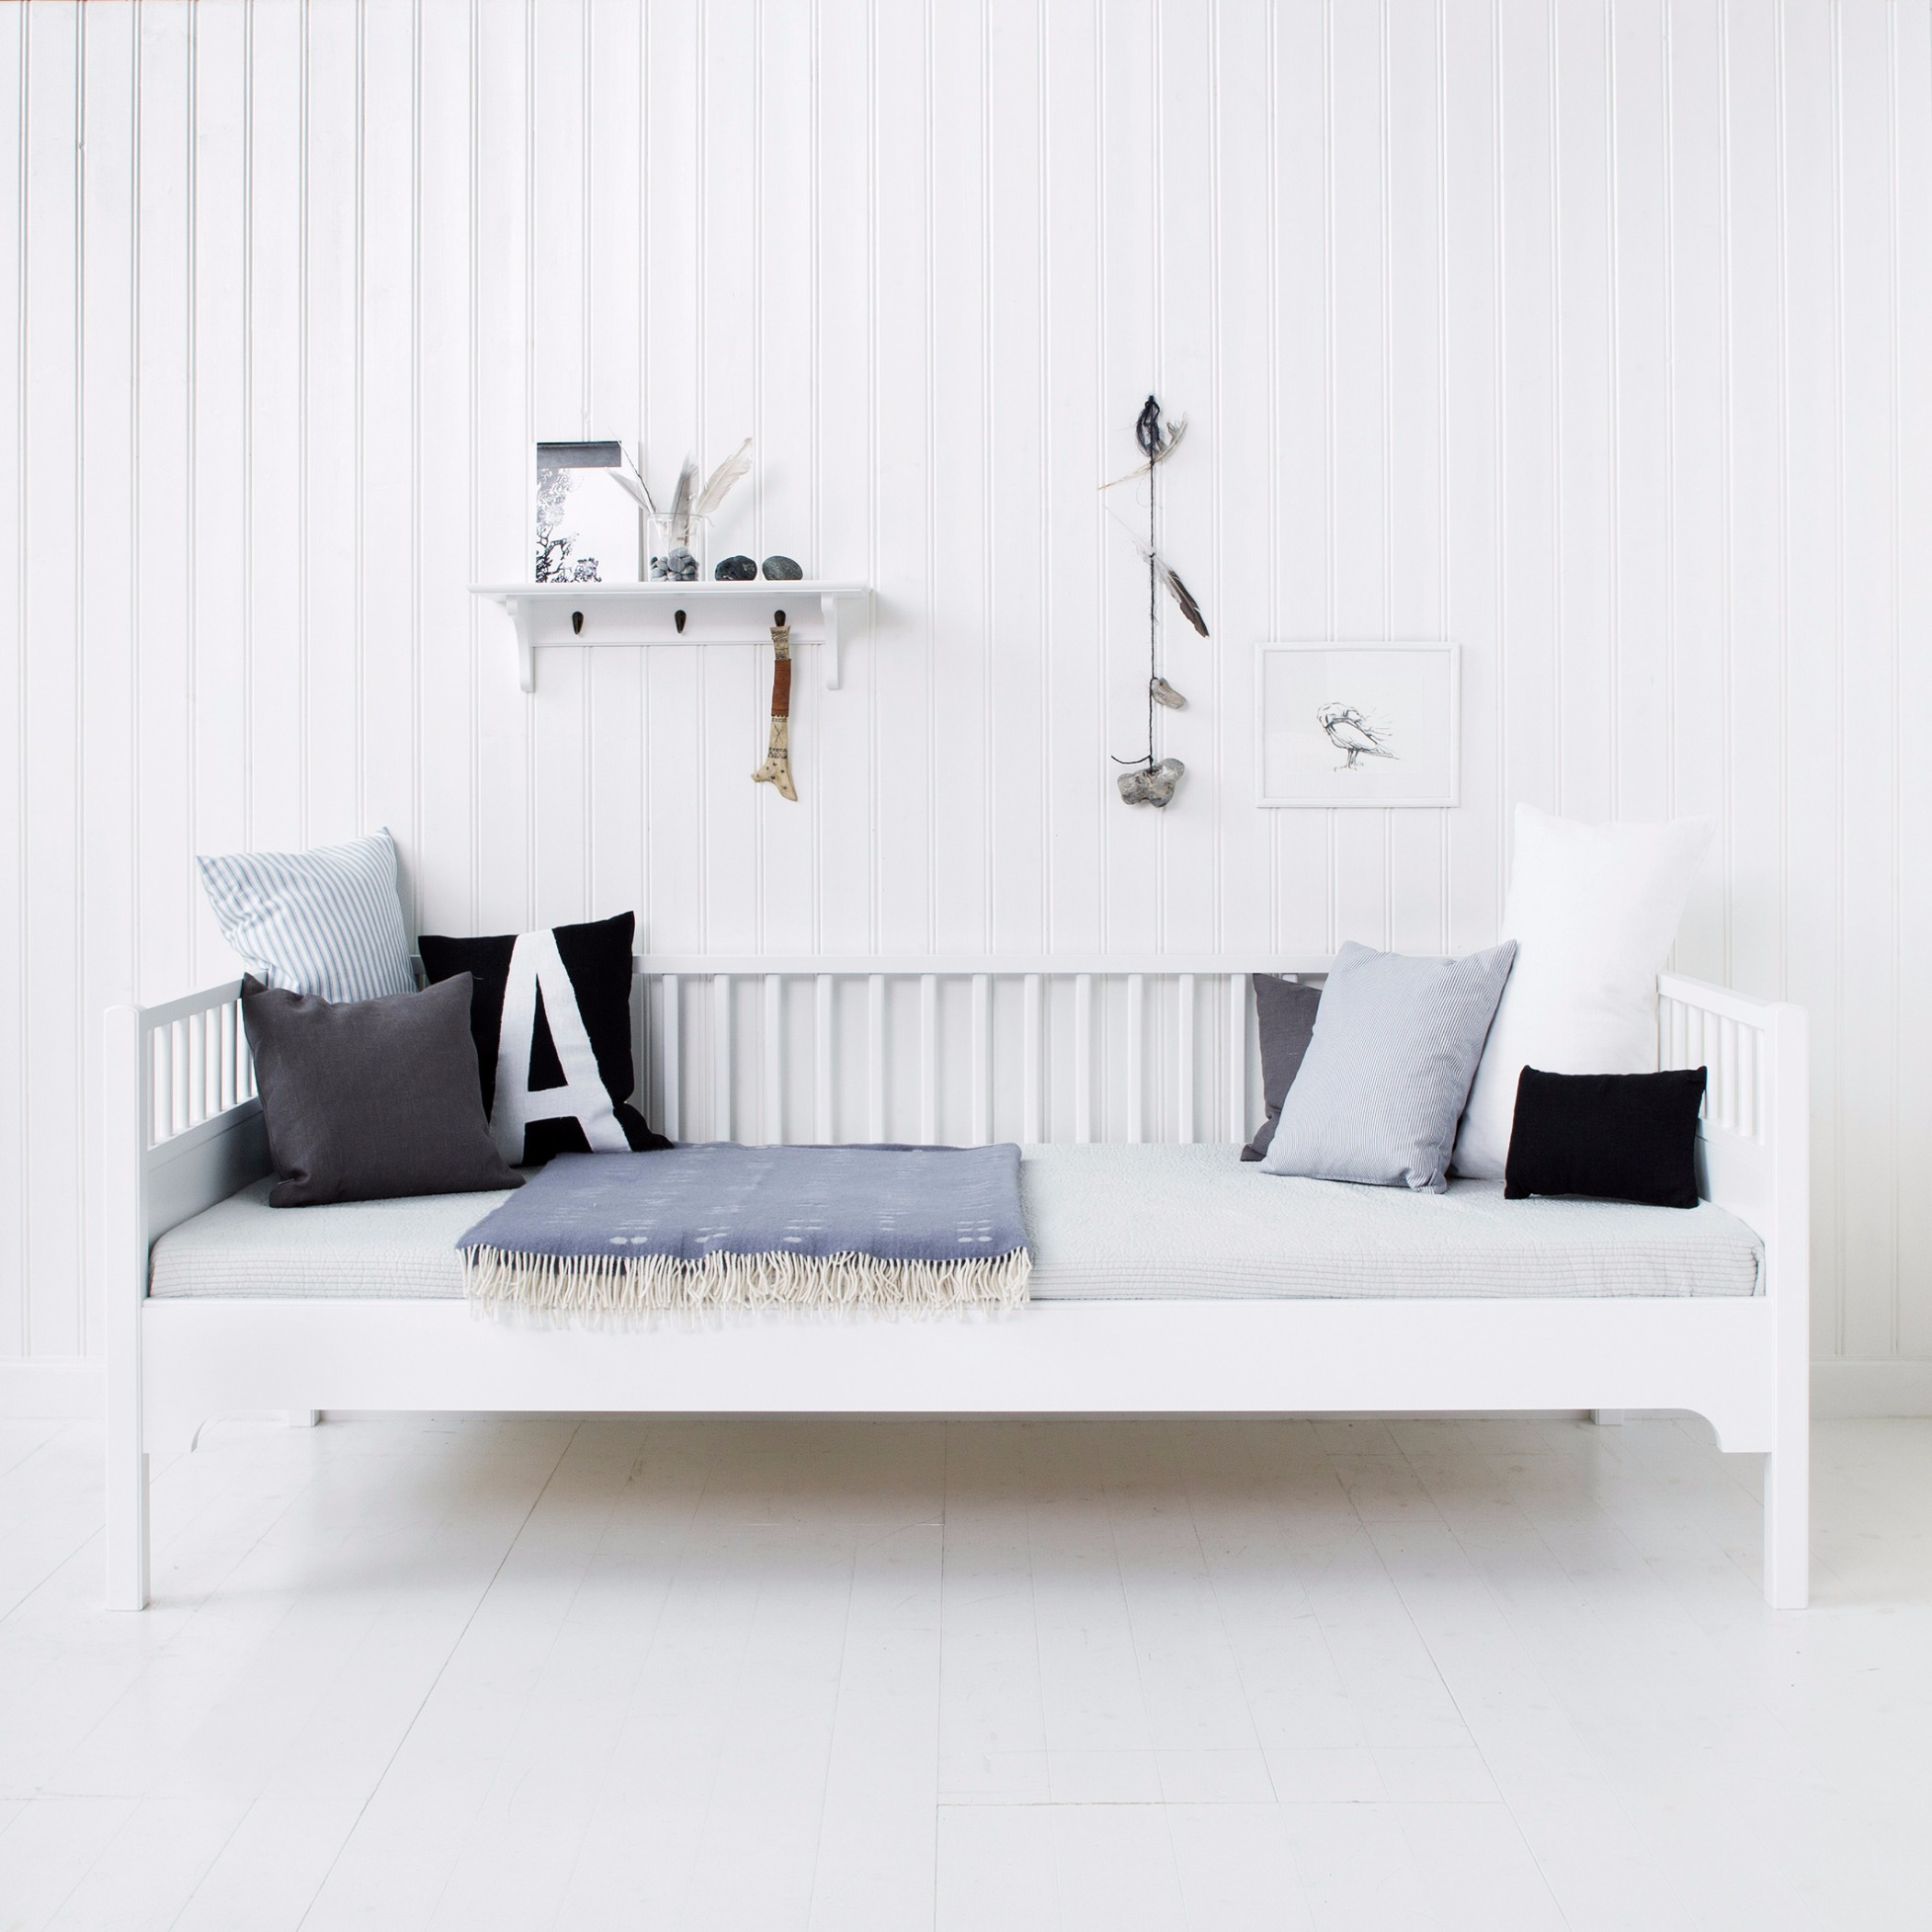 Sofabett tagesbett von oliver furniture for Bettsofa jugendzimmer